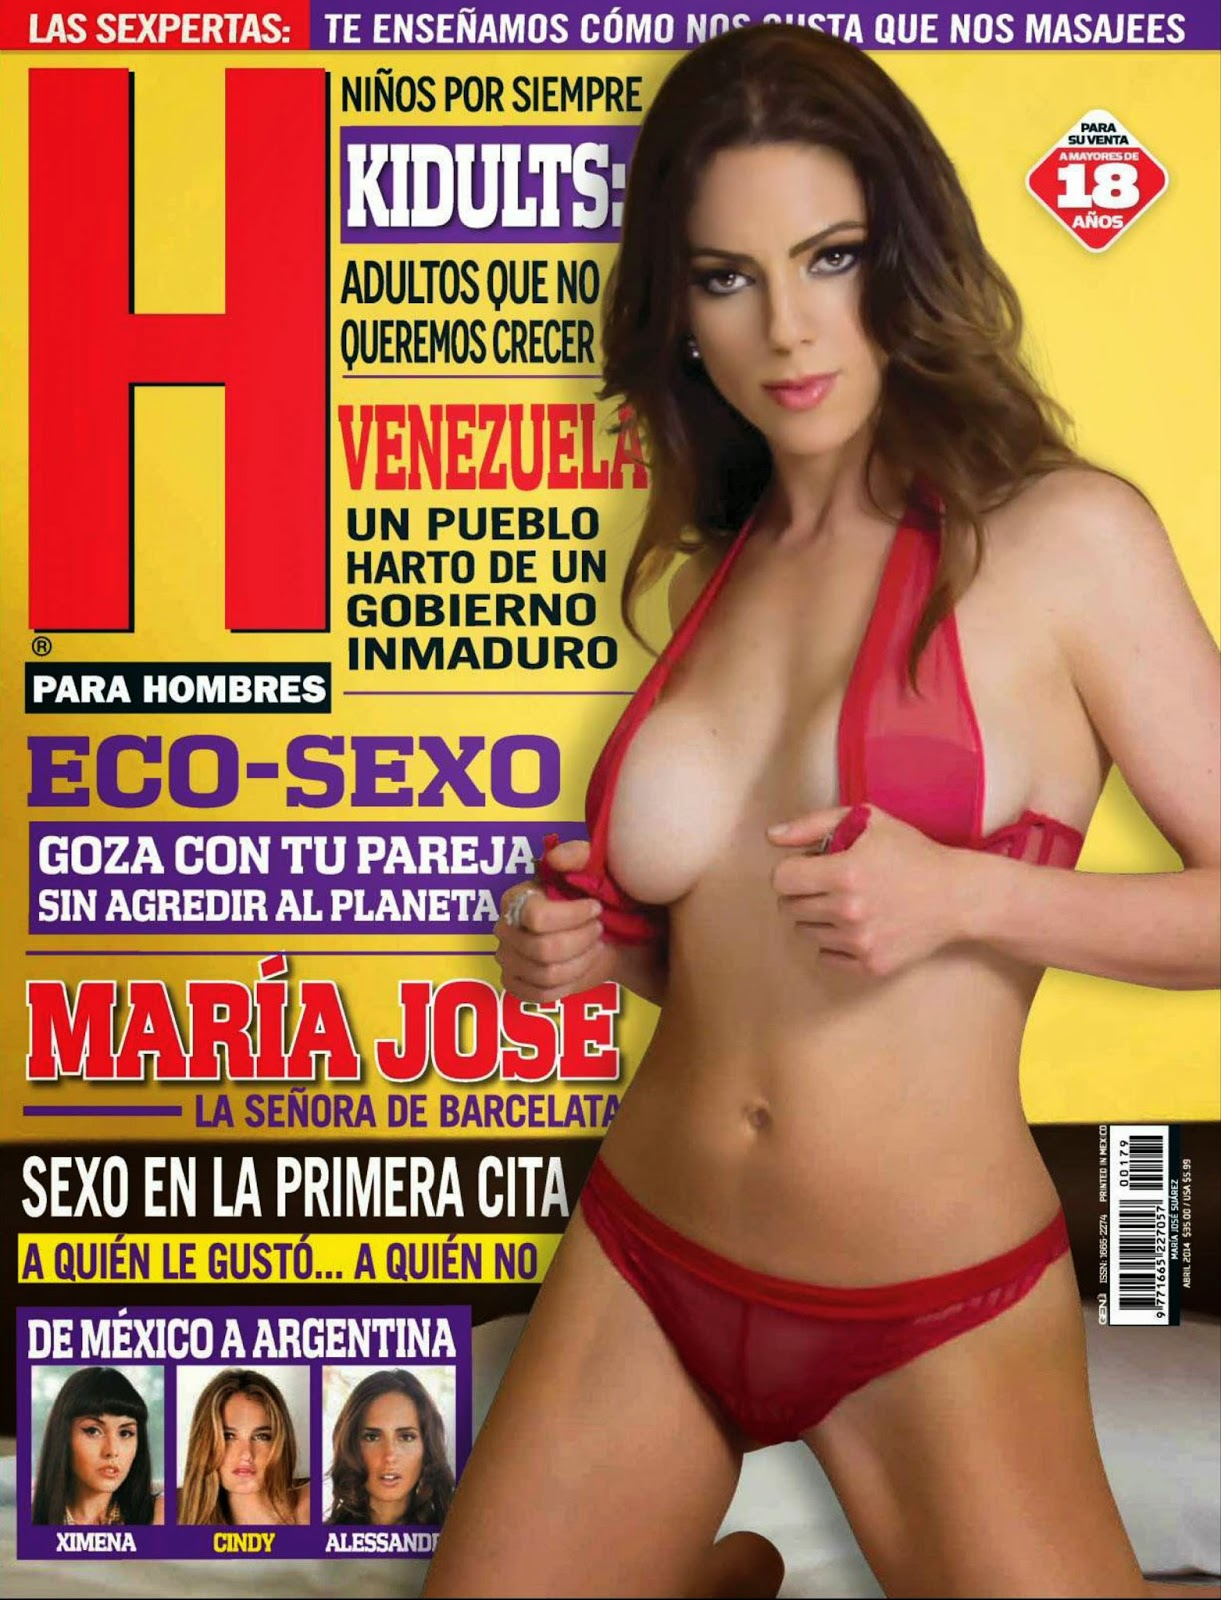 Imagenes Maria Jose en Revista H Abril 2014 | Fotos